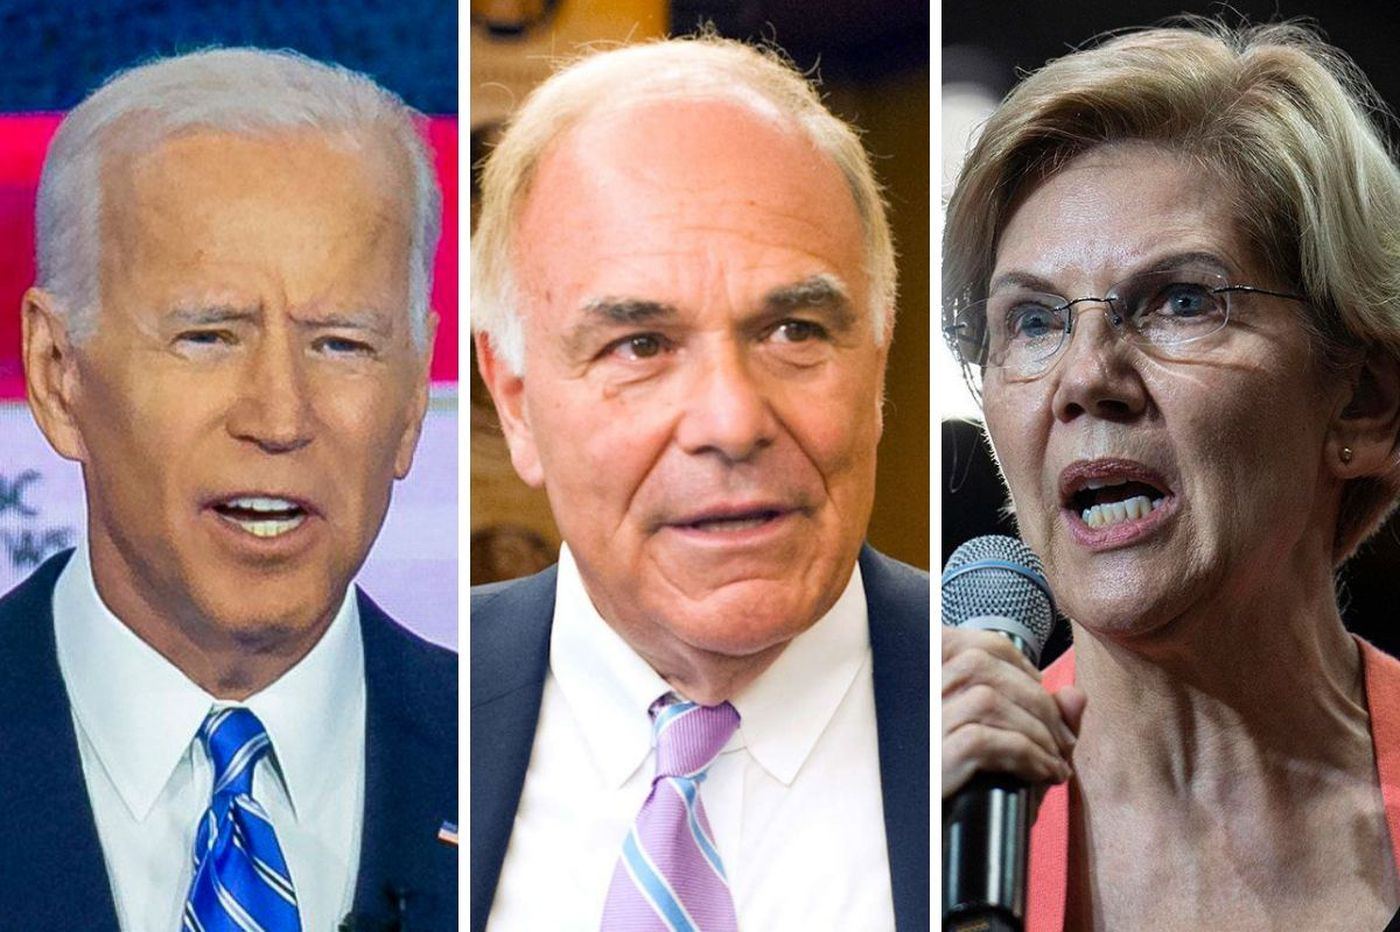 Ed Rendell says 'Bernie bots are happy' about his attack on Elizabeth Warren in support of Joe Biden | Clout